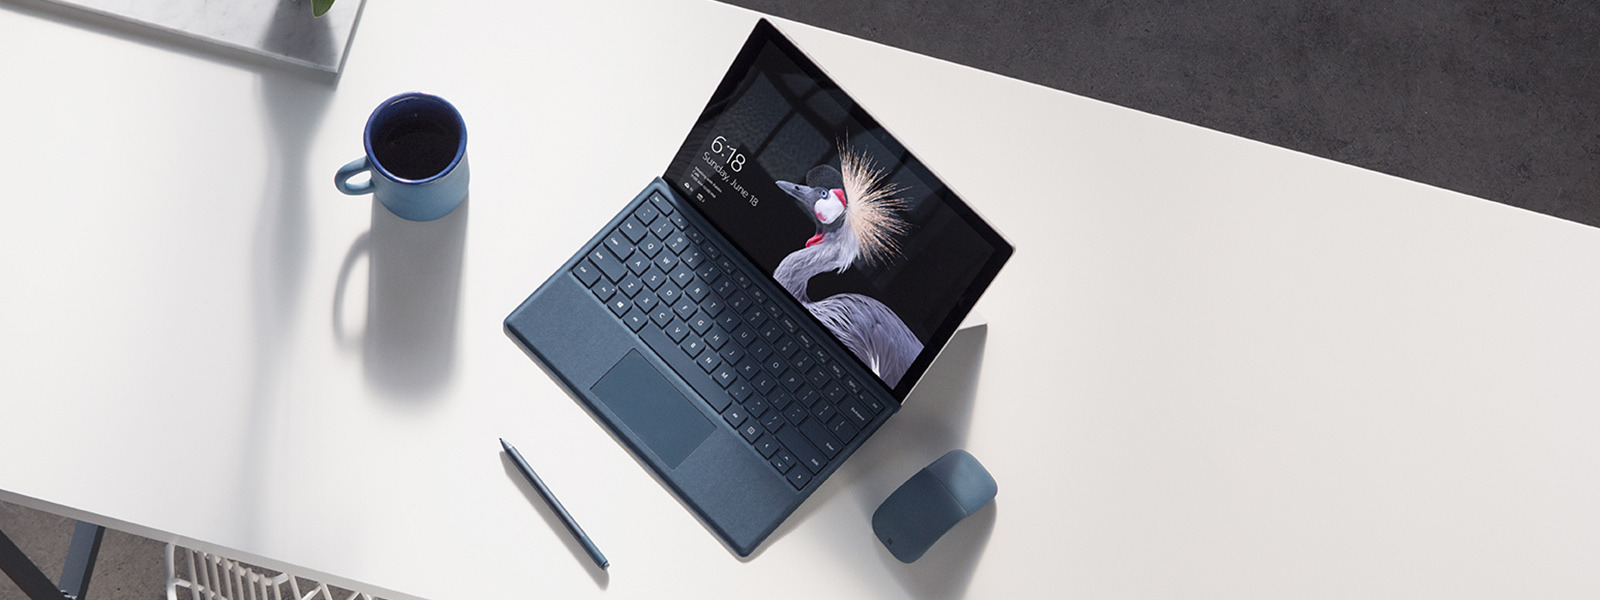 Image of Surface Pro device on the bench with Surface Pen.